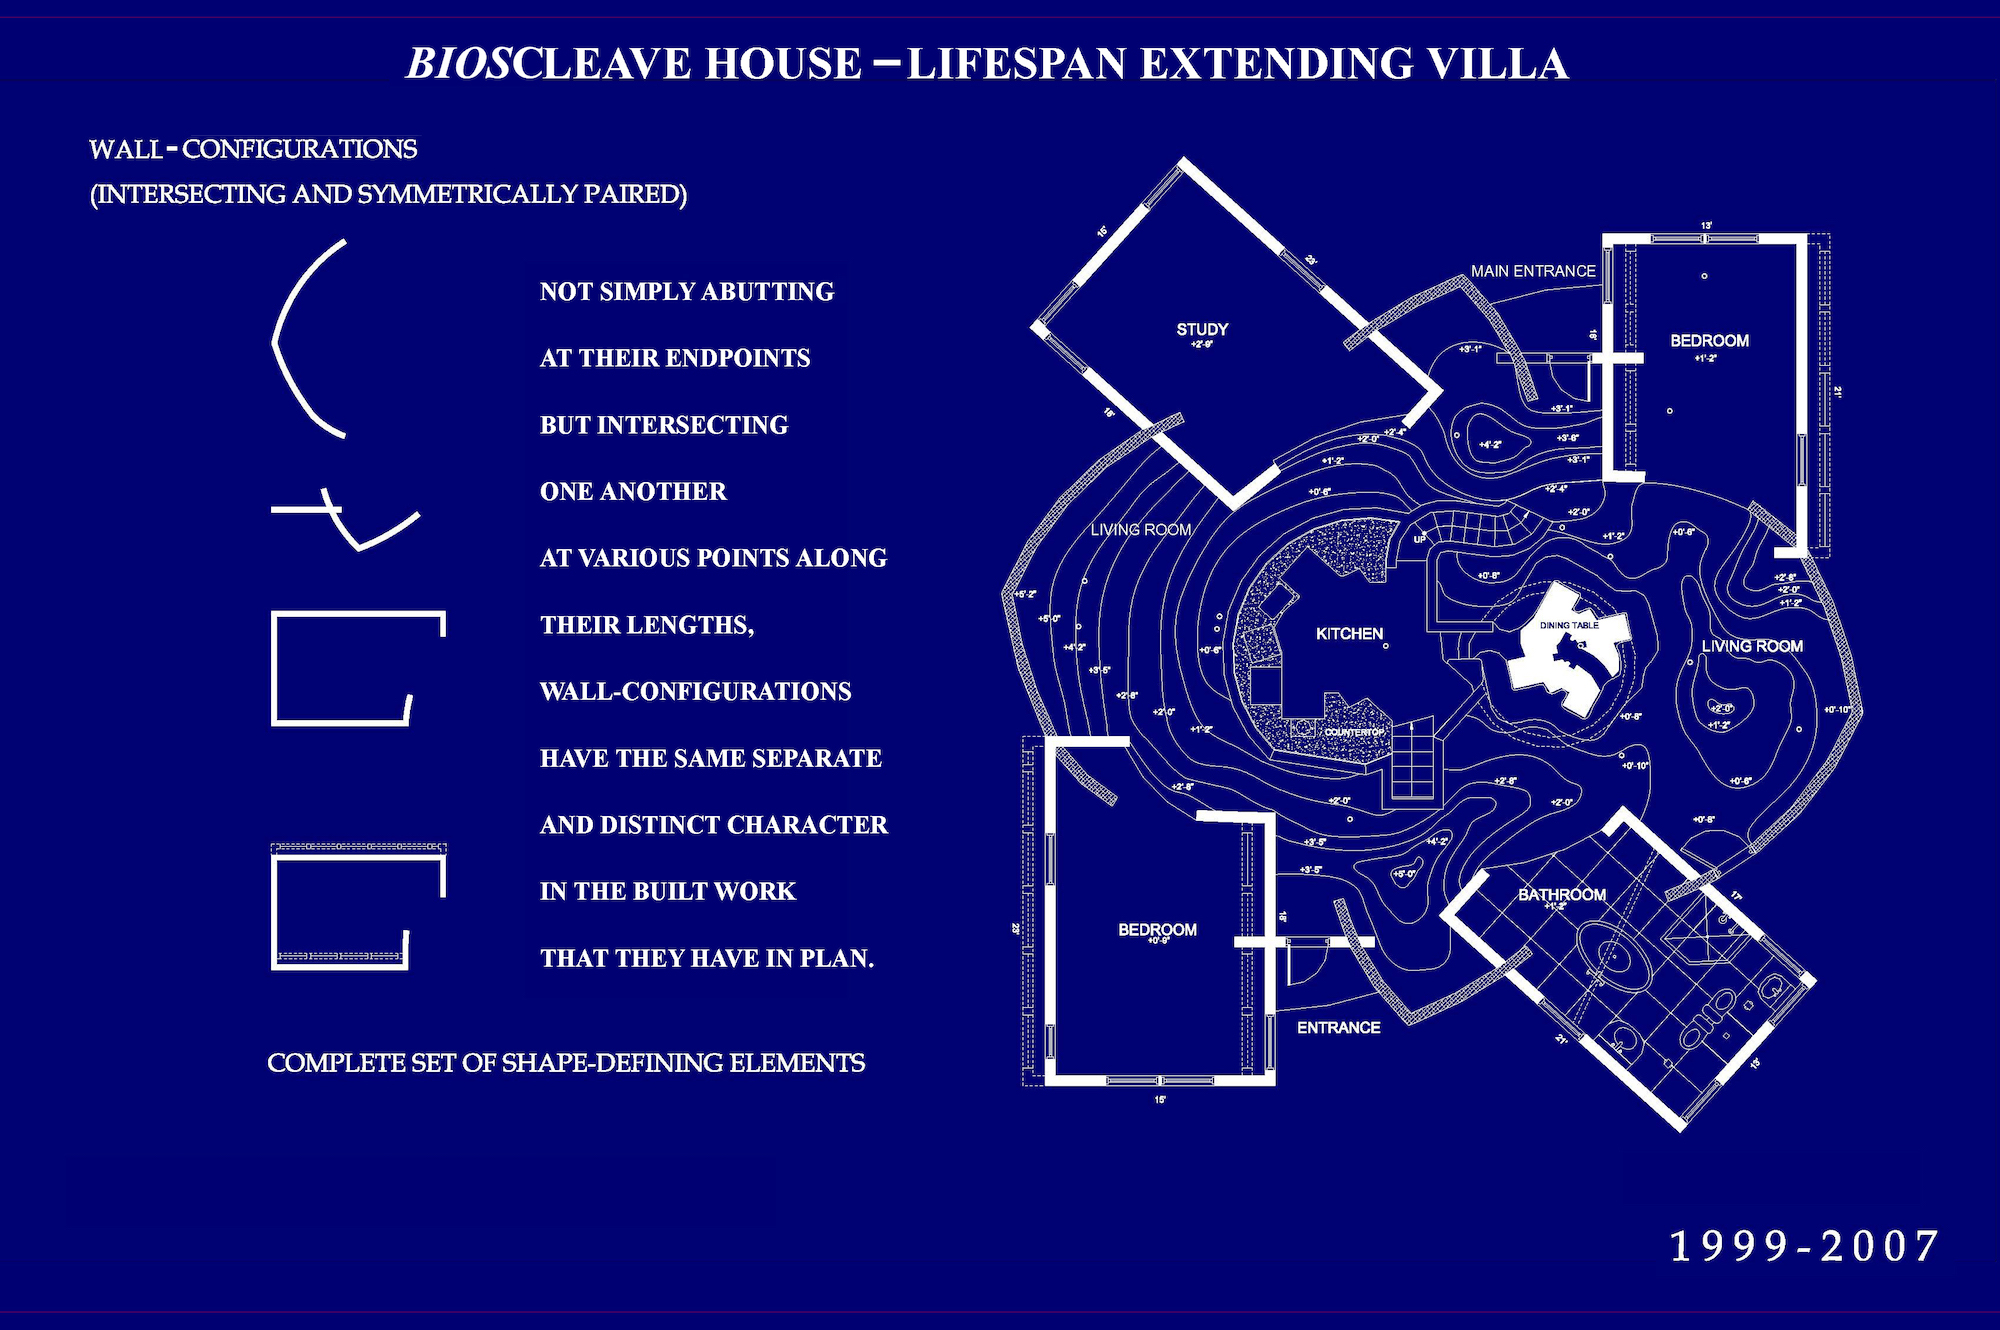 Arakawa and Madeline Gins, Bioscleave House (Lifespan Extending Villa) Set of Shape Defining Elements, 2006. © 2010 Estate of Madeline Gins. Reproduced with permission of the Estate of Madeline Gins. Courtesy of Reversible Destiny Foundation